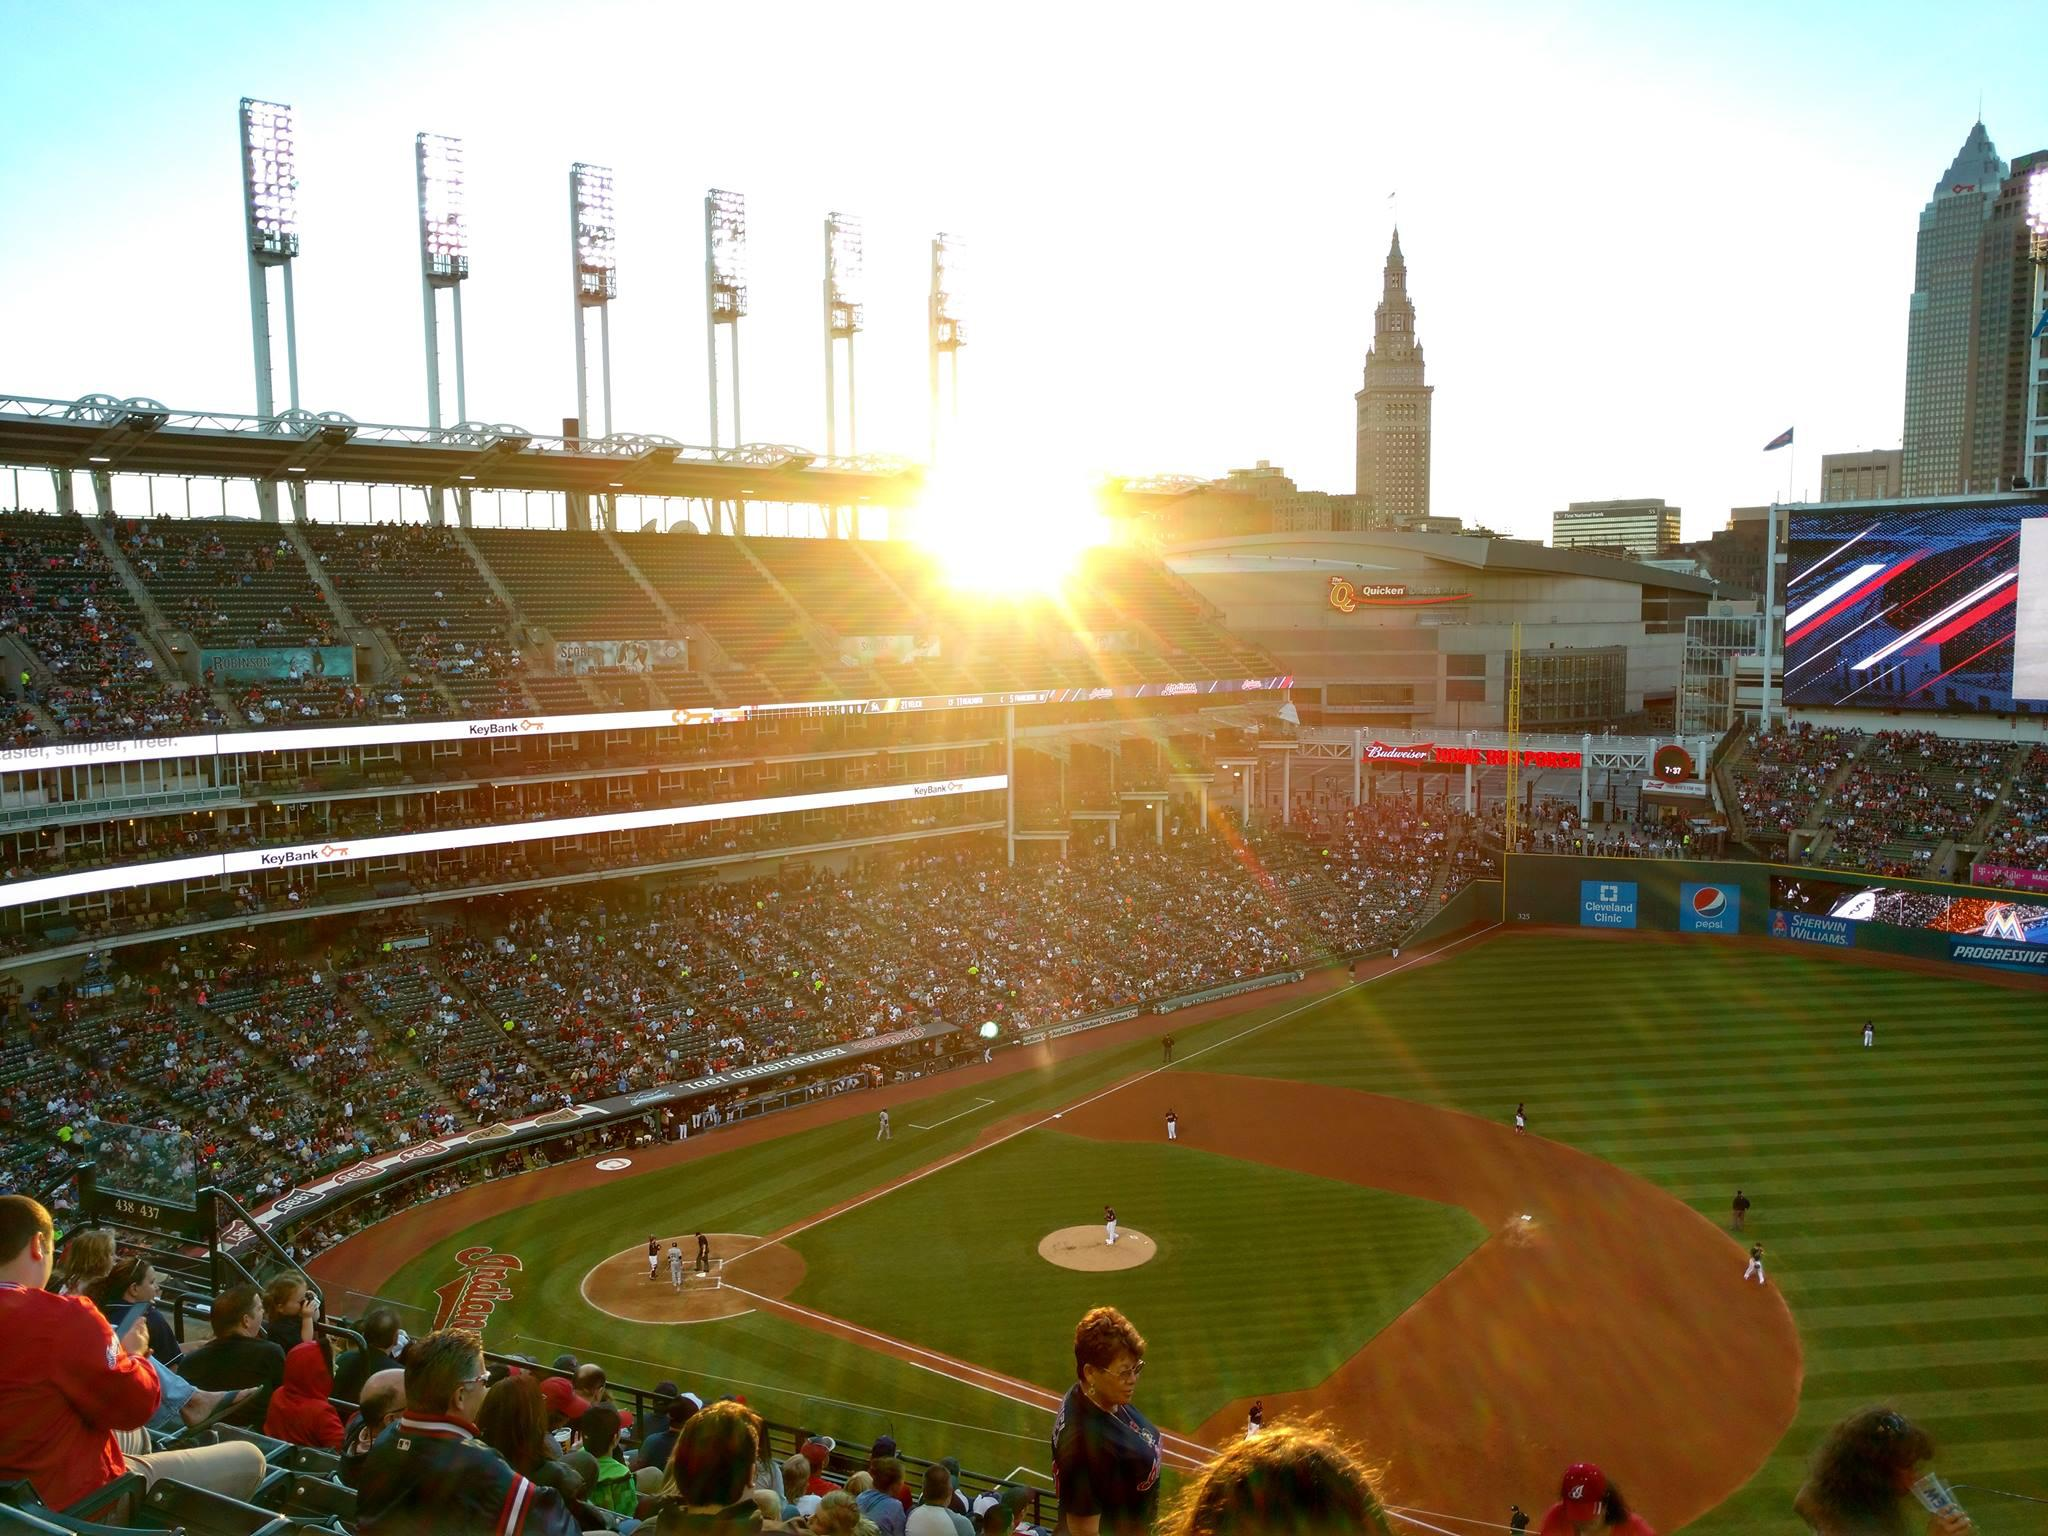 Cleveland Indians vs. Kanas City Royals At Progressive Field